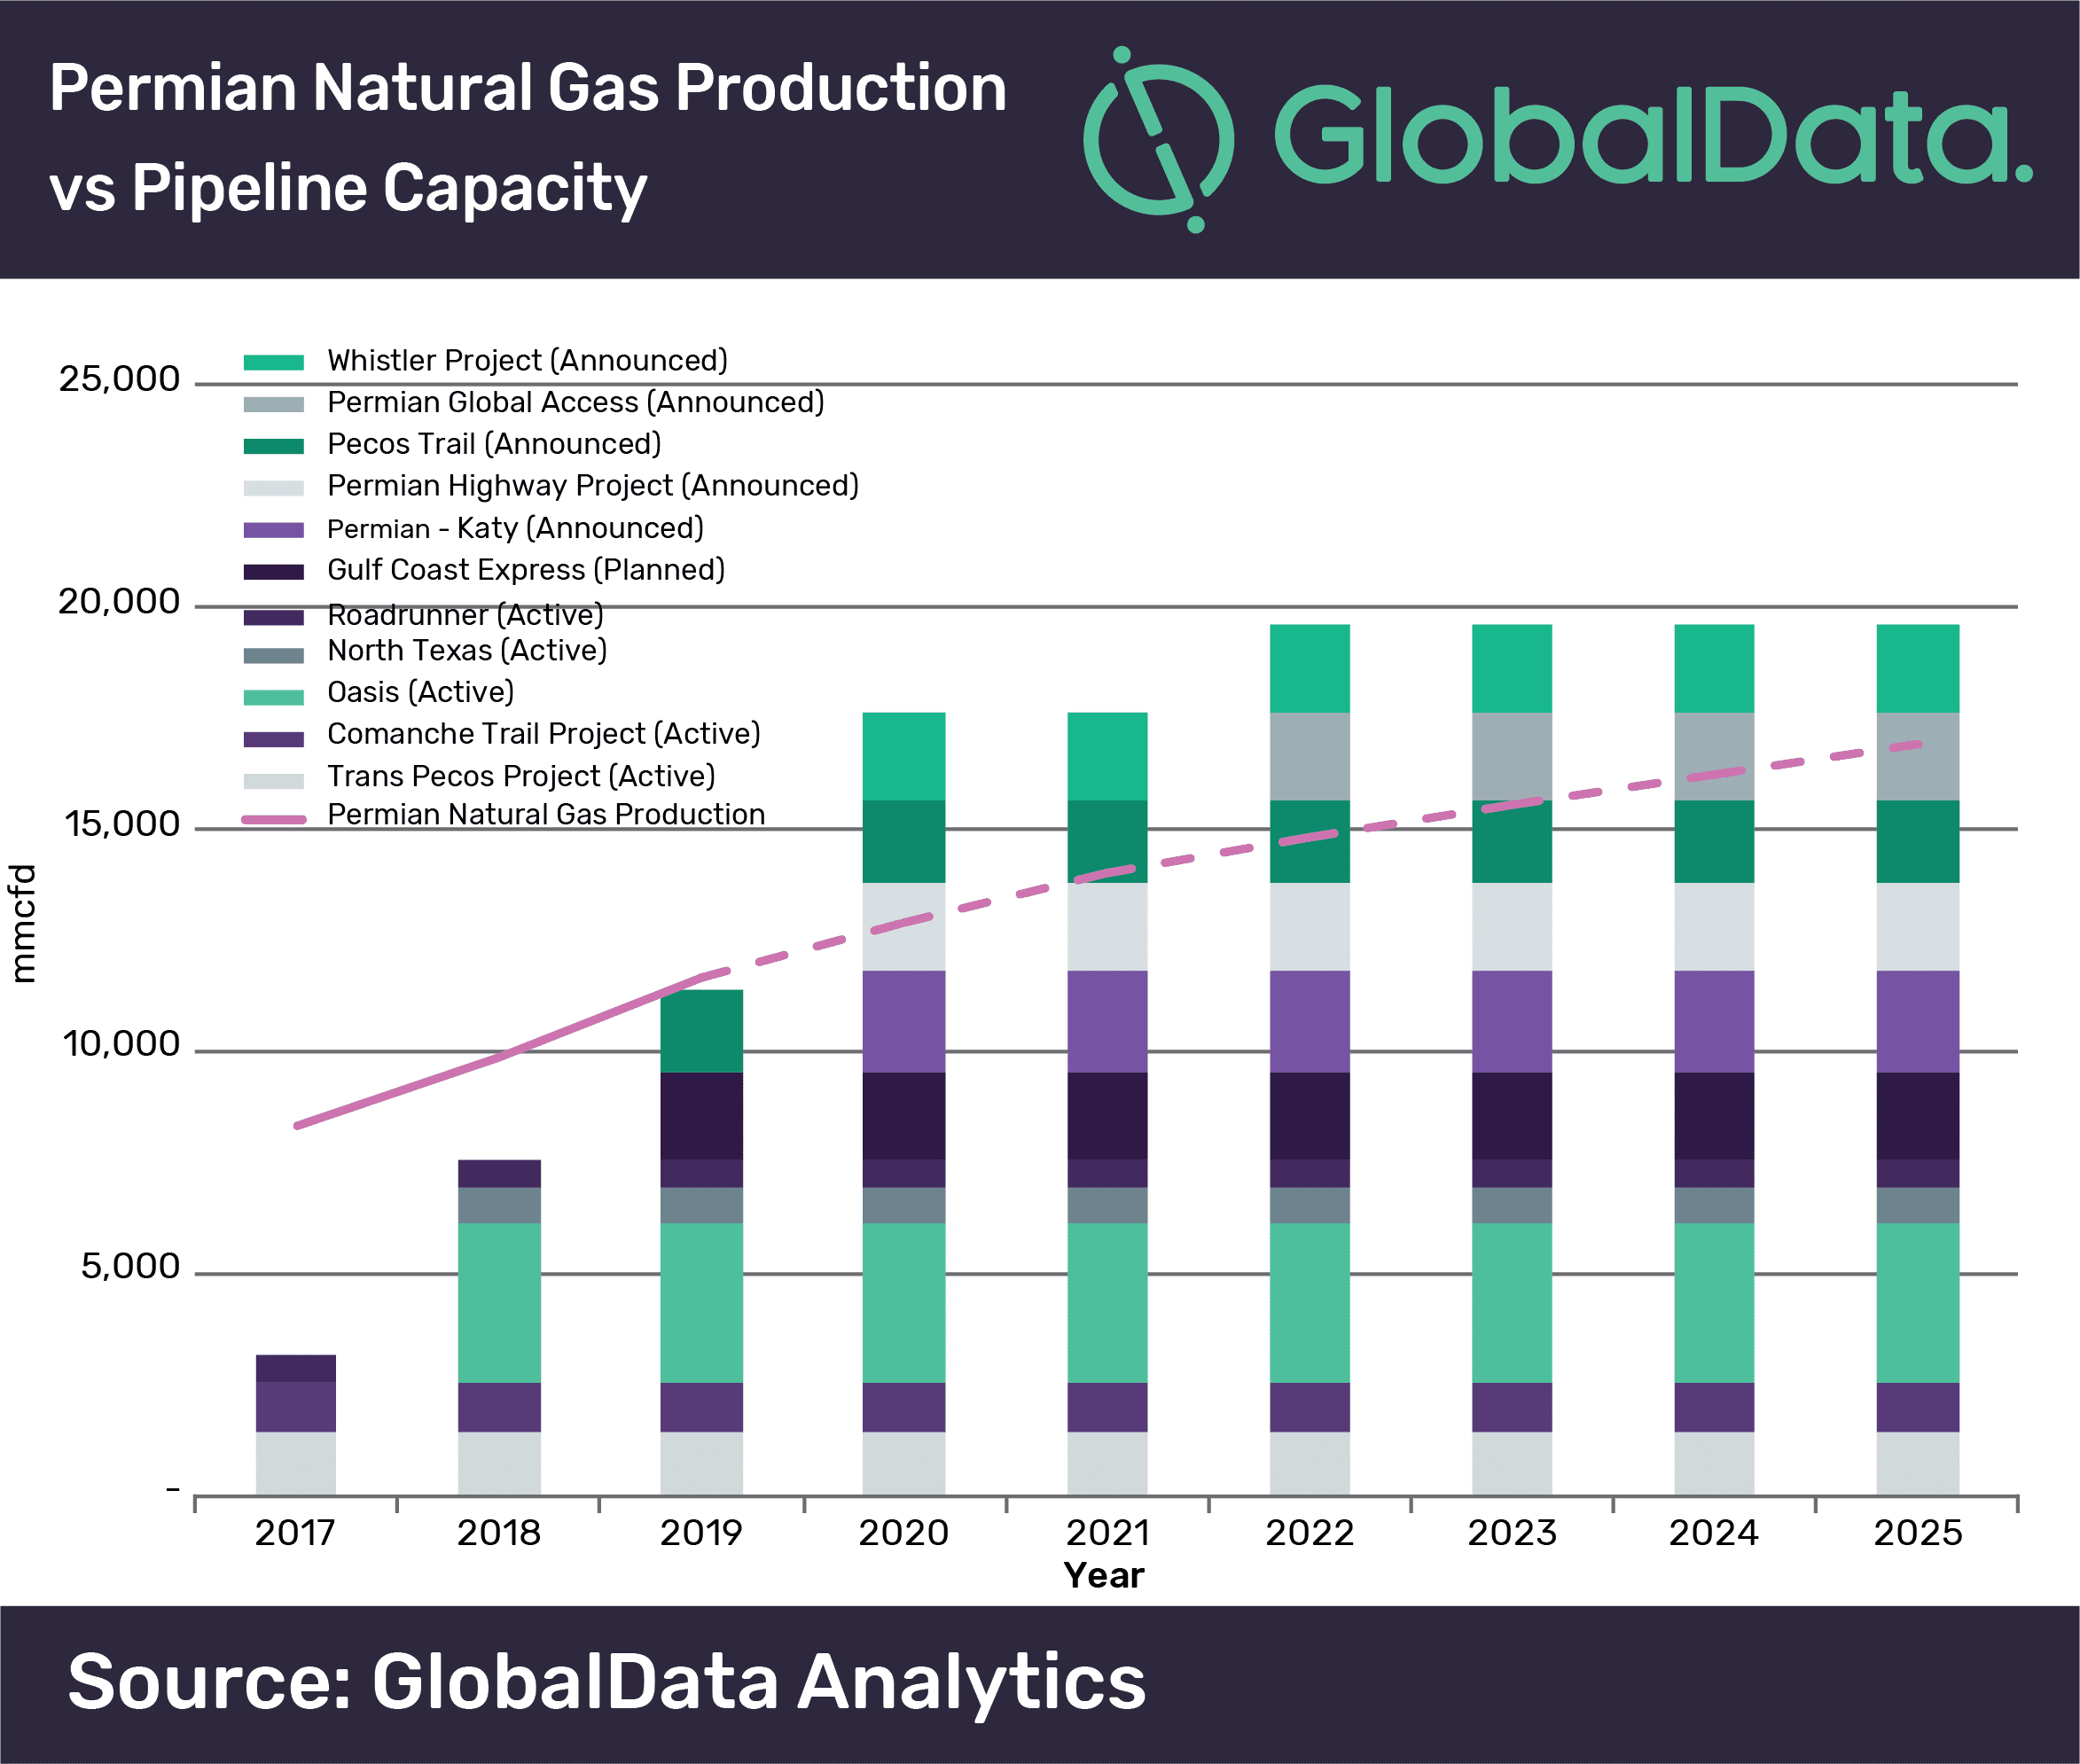 Natural gas prices in the Permian basin likely to remain low during 2019 due to constrained pipeline capacity